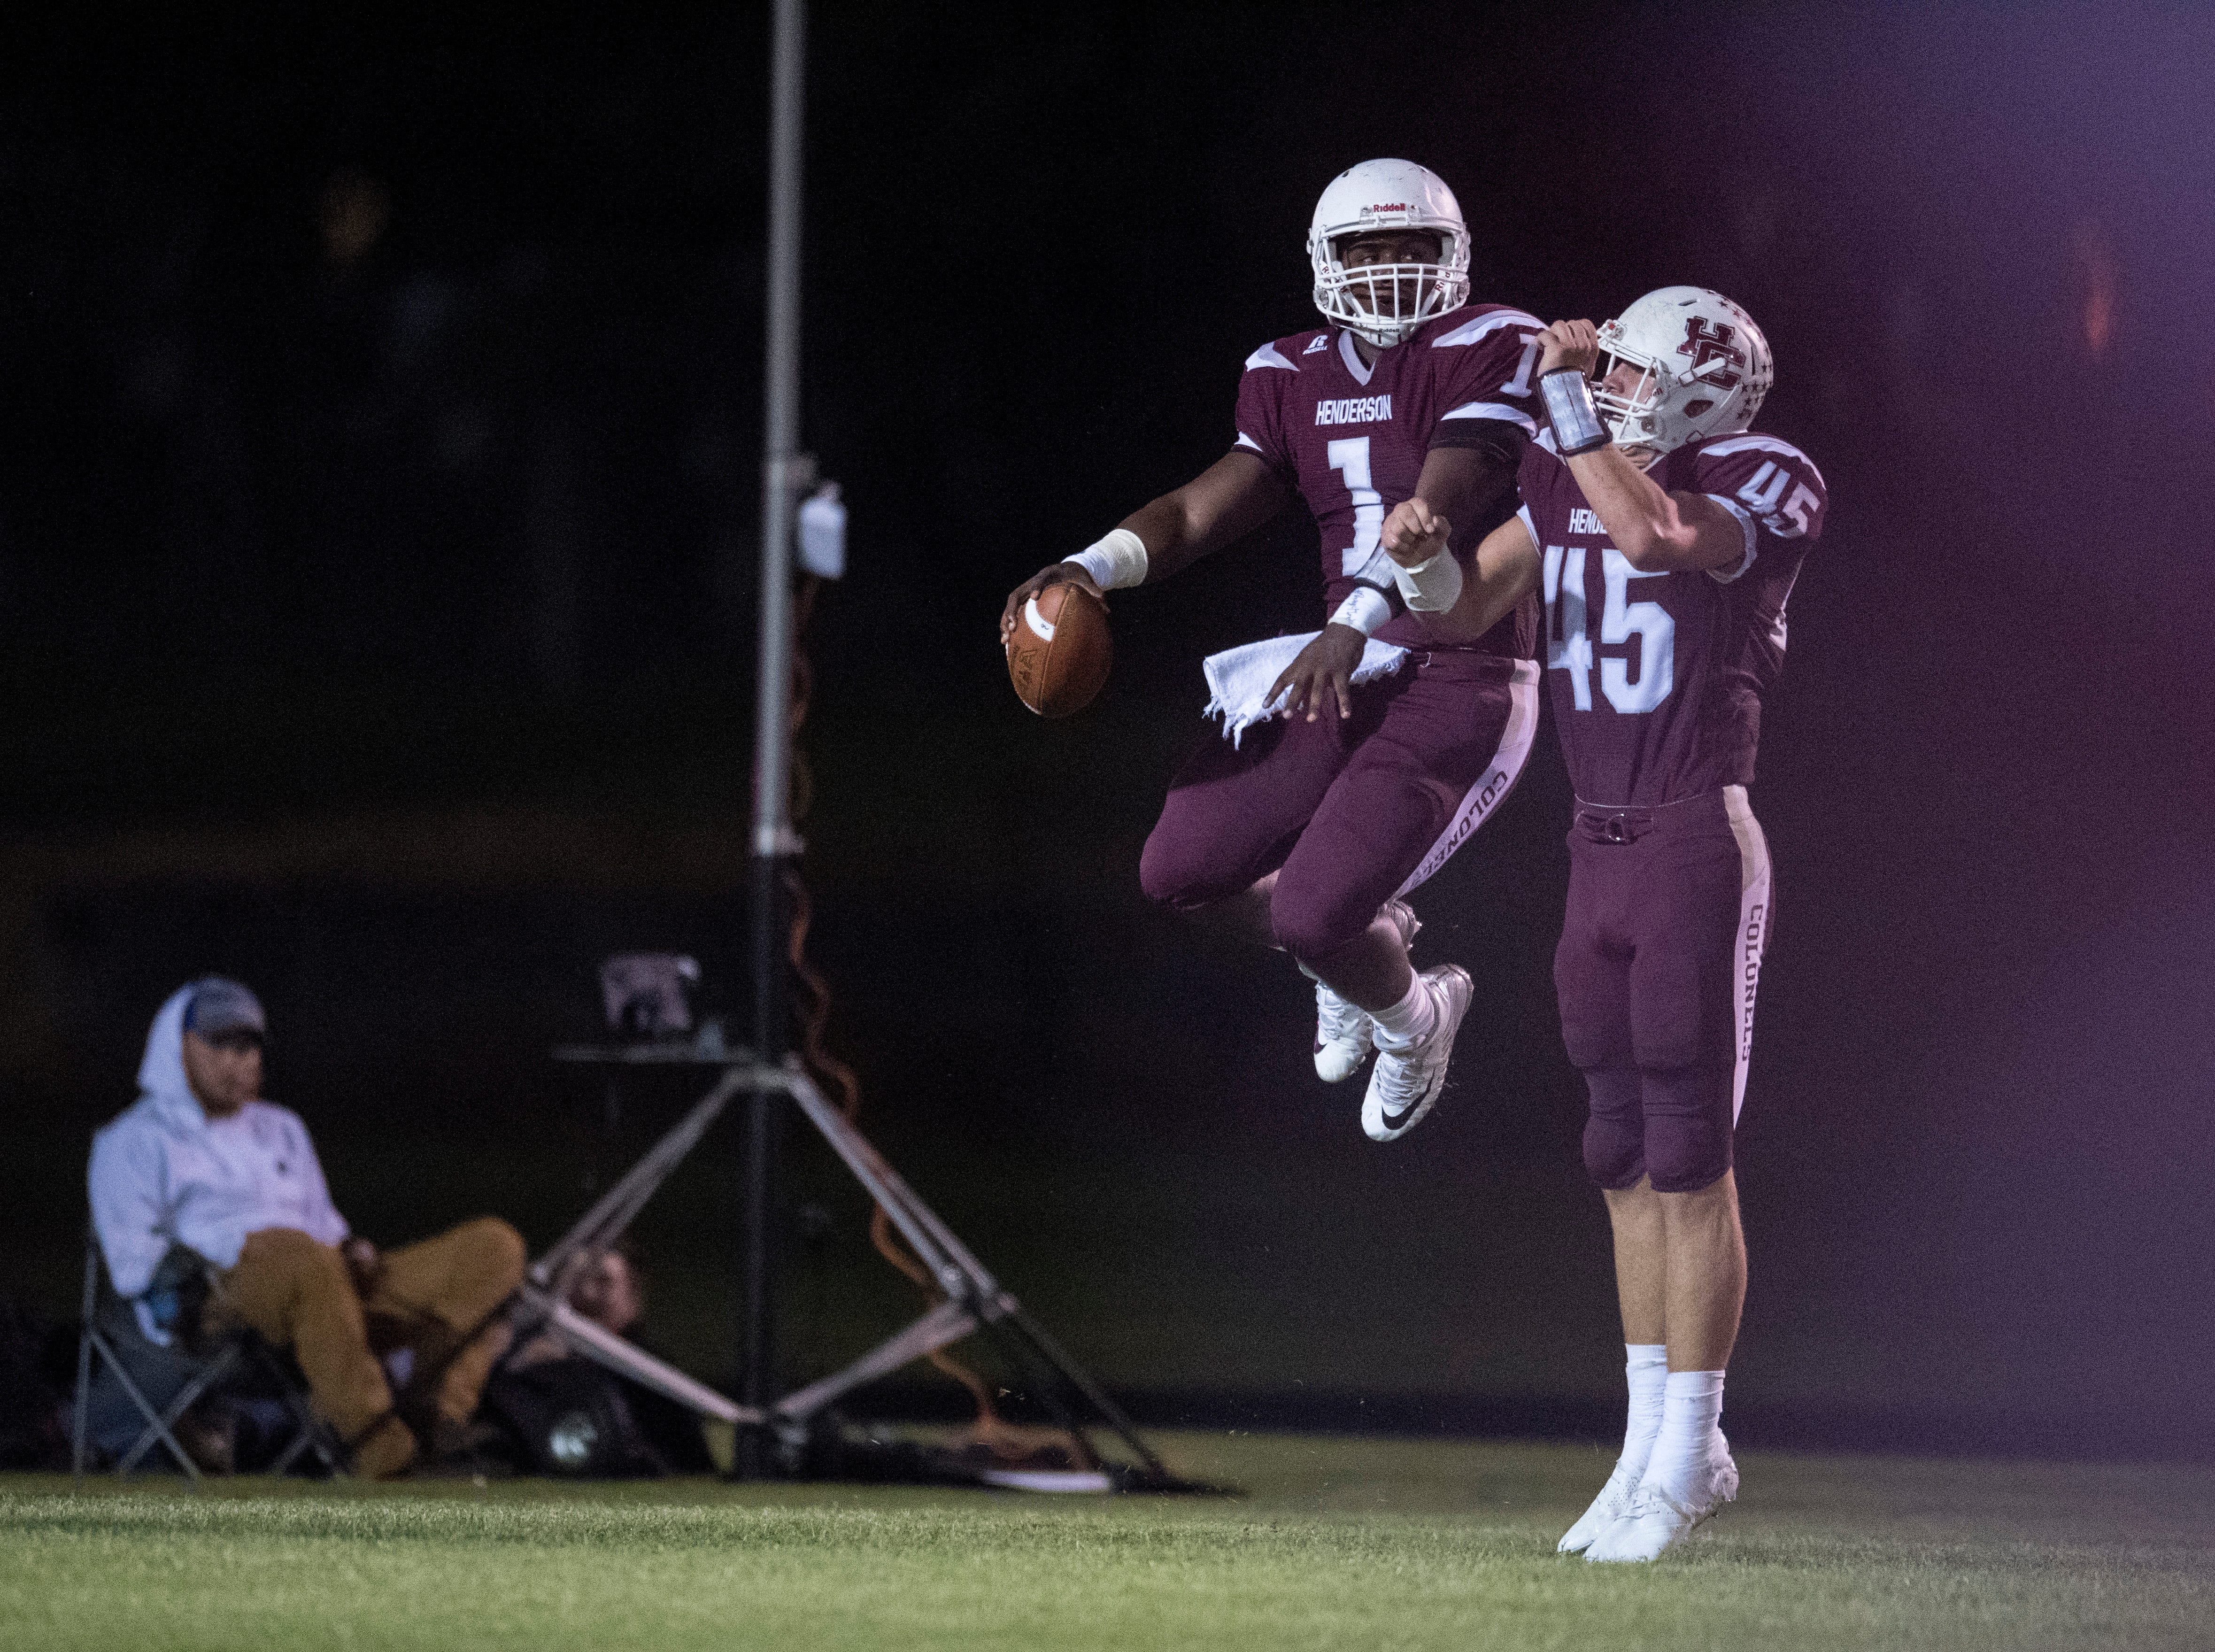 Henderson's Skip Patterson (1) and Henderson's Ian Pitt (45) celebrate after a touchdown during the Henderson vs Muhlenberg County game at Colonel Stadium Friday, Sept. 28, 2018. The Henderson County Colonels won, 61-6.